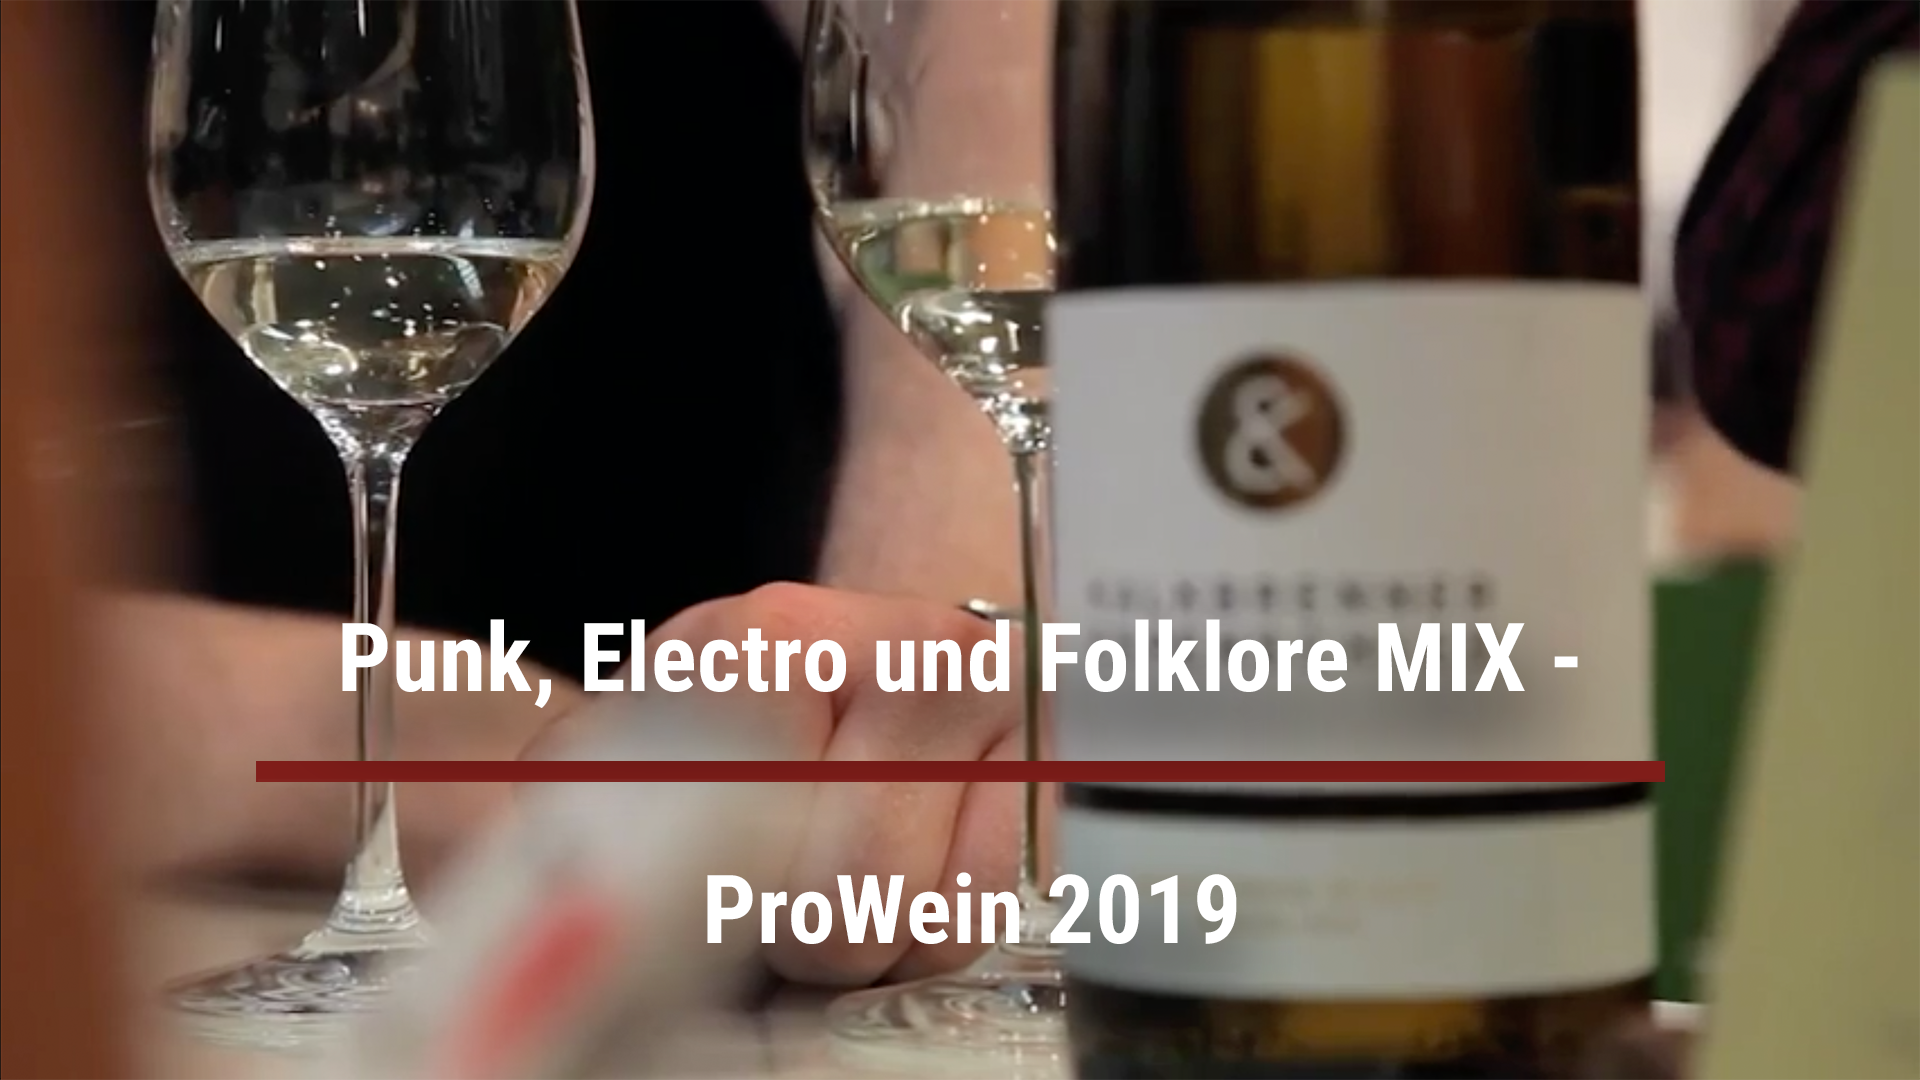 Punk, Electro and Folklore MIX – ProWein 2019